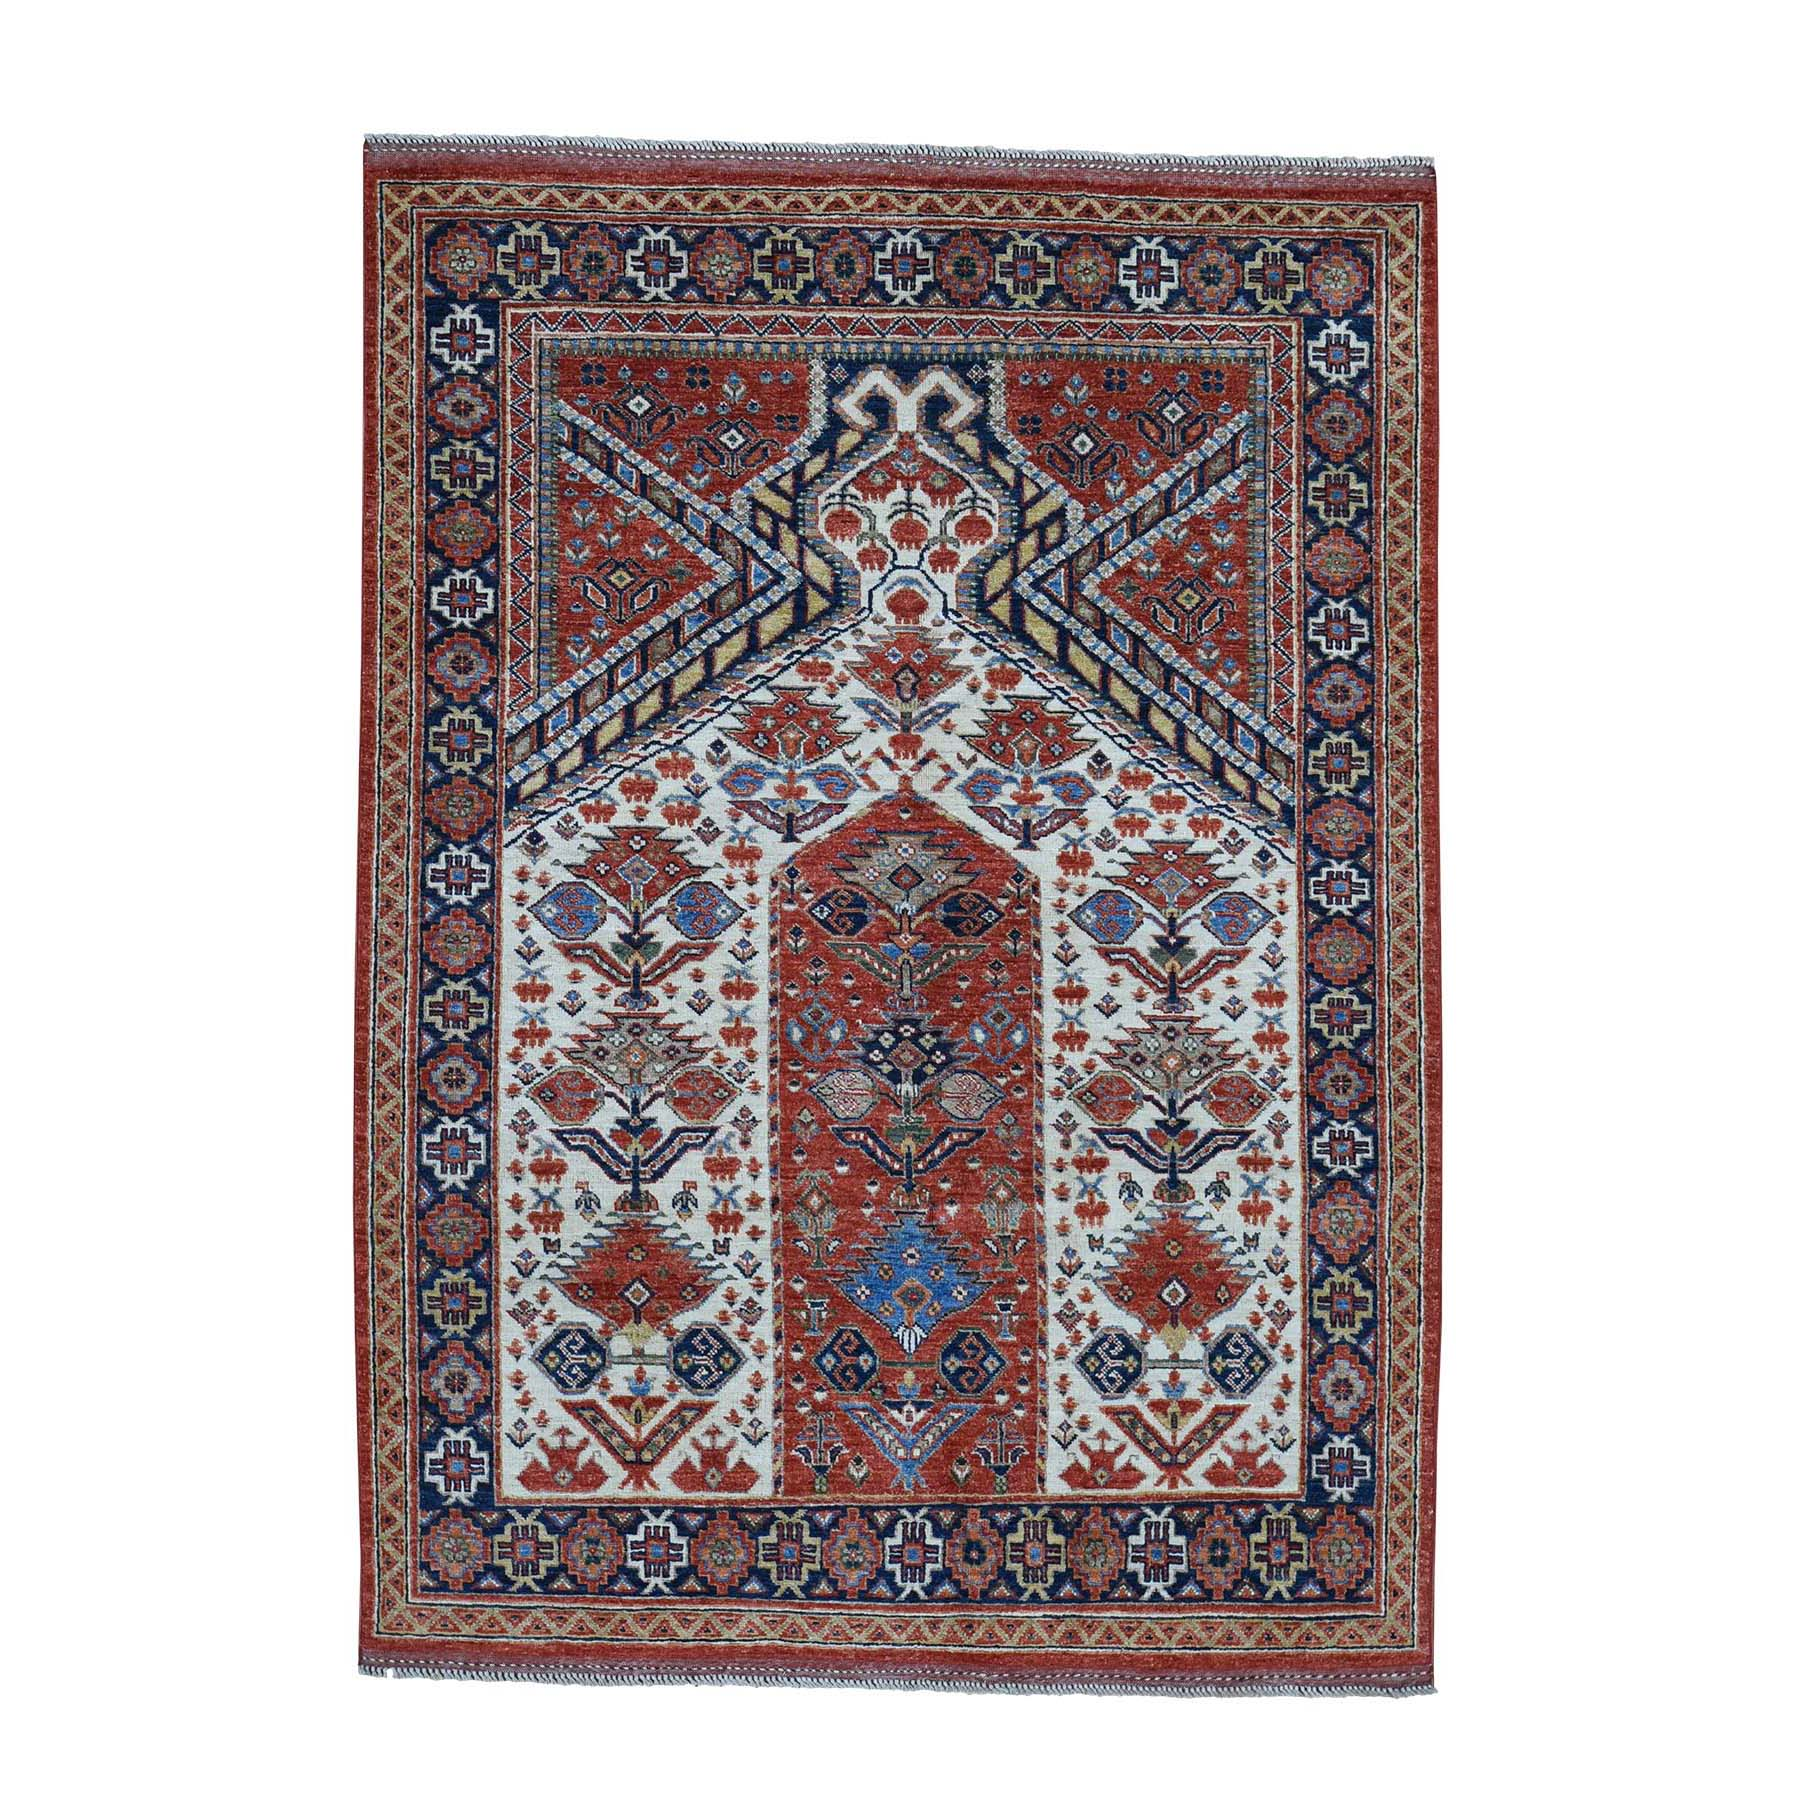 5'X7' Pure Wool Hand-Knotted Afghan Ersari Prayer Design Oriental Rug moadbc66